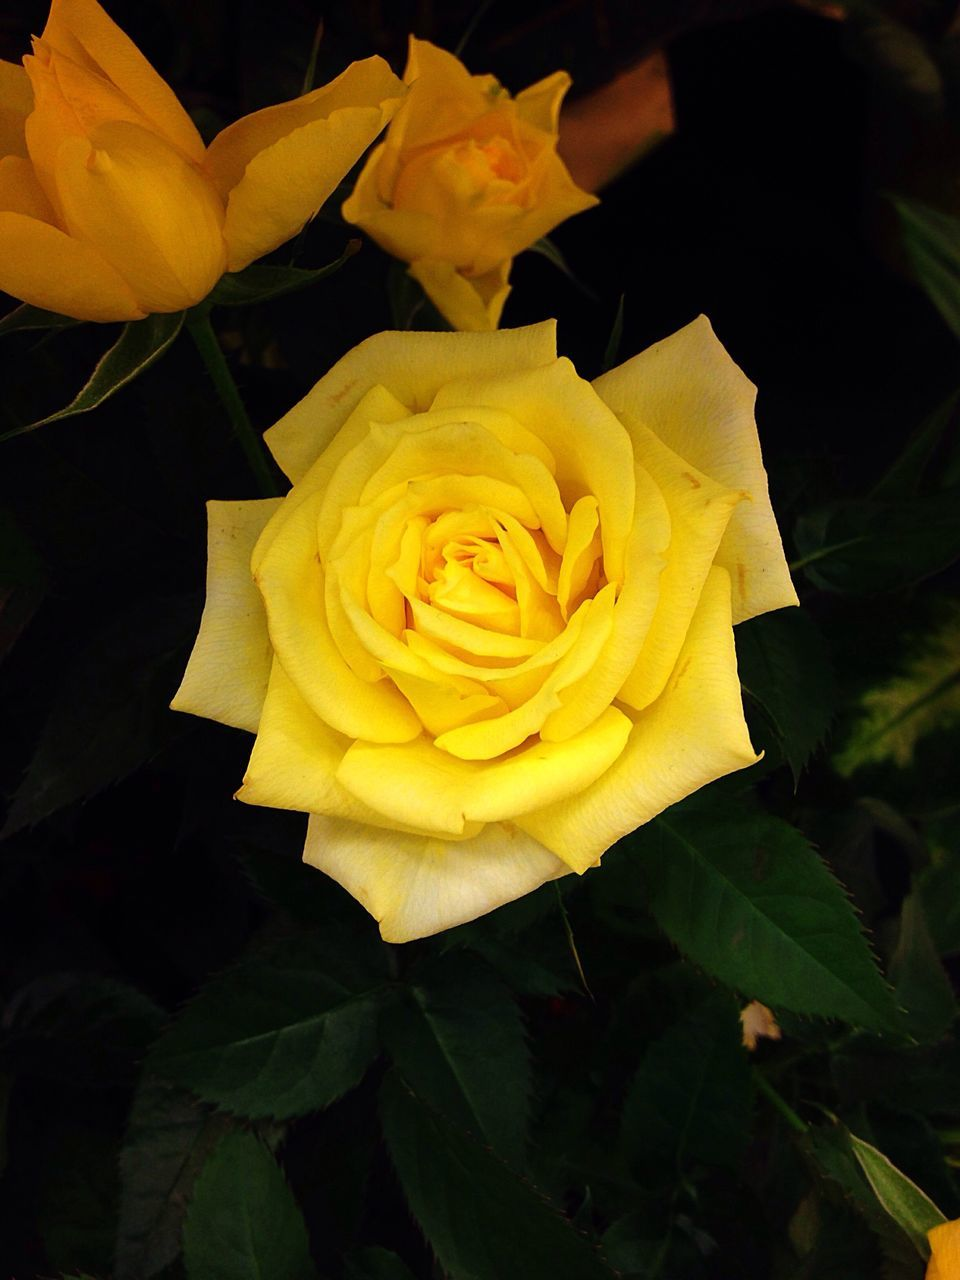 flower, petal, rose - flower, flower head, fragility, nature, beauty in nature, freshness, growth, plant, botany, close-up, leaf, yellow, no people, outdoors, soft focus, blooming, beauty, day